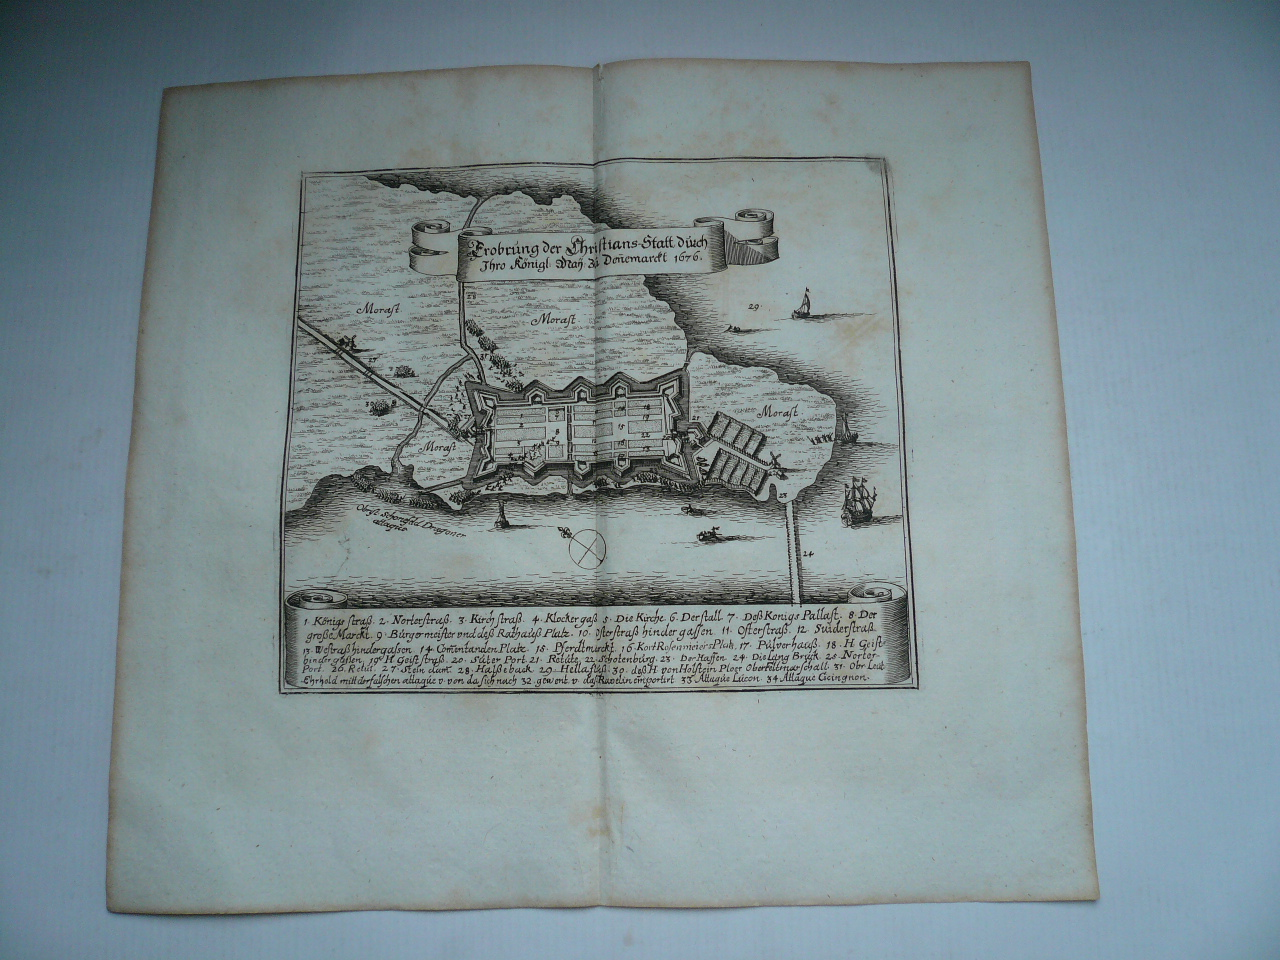 Christianstad, anno 1676, capture of, copperengraving, Merian Ma